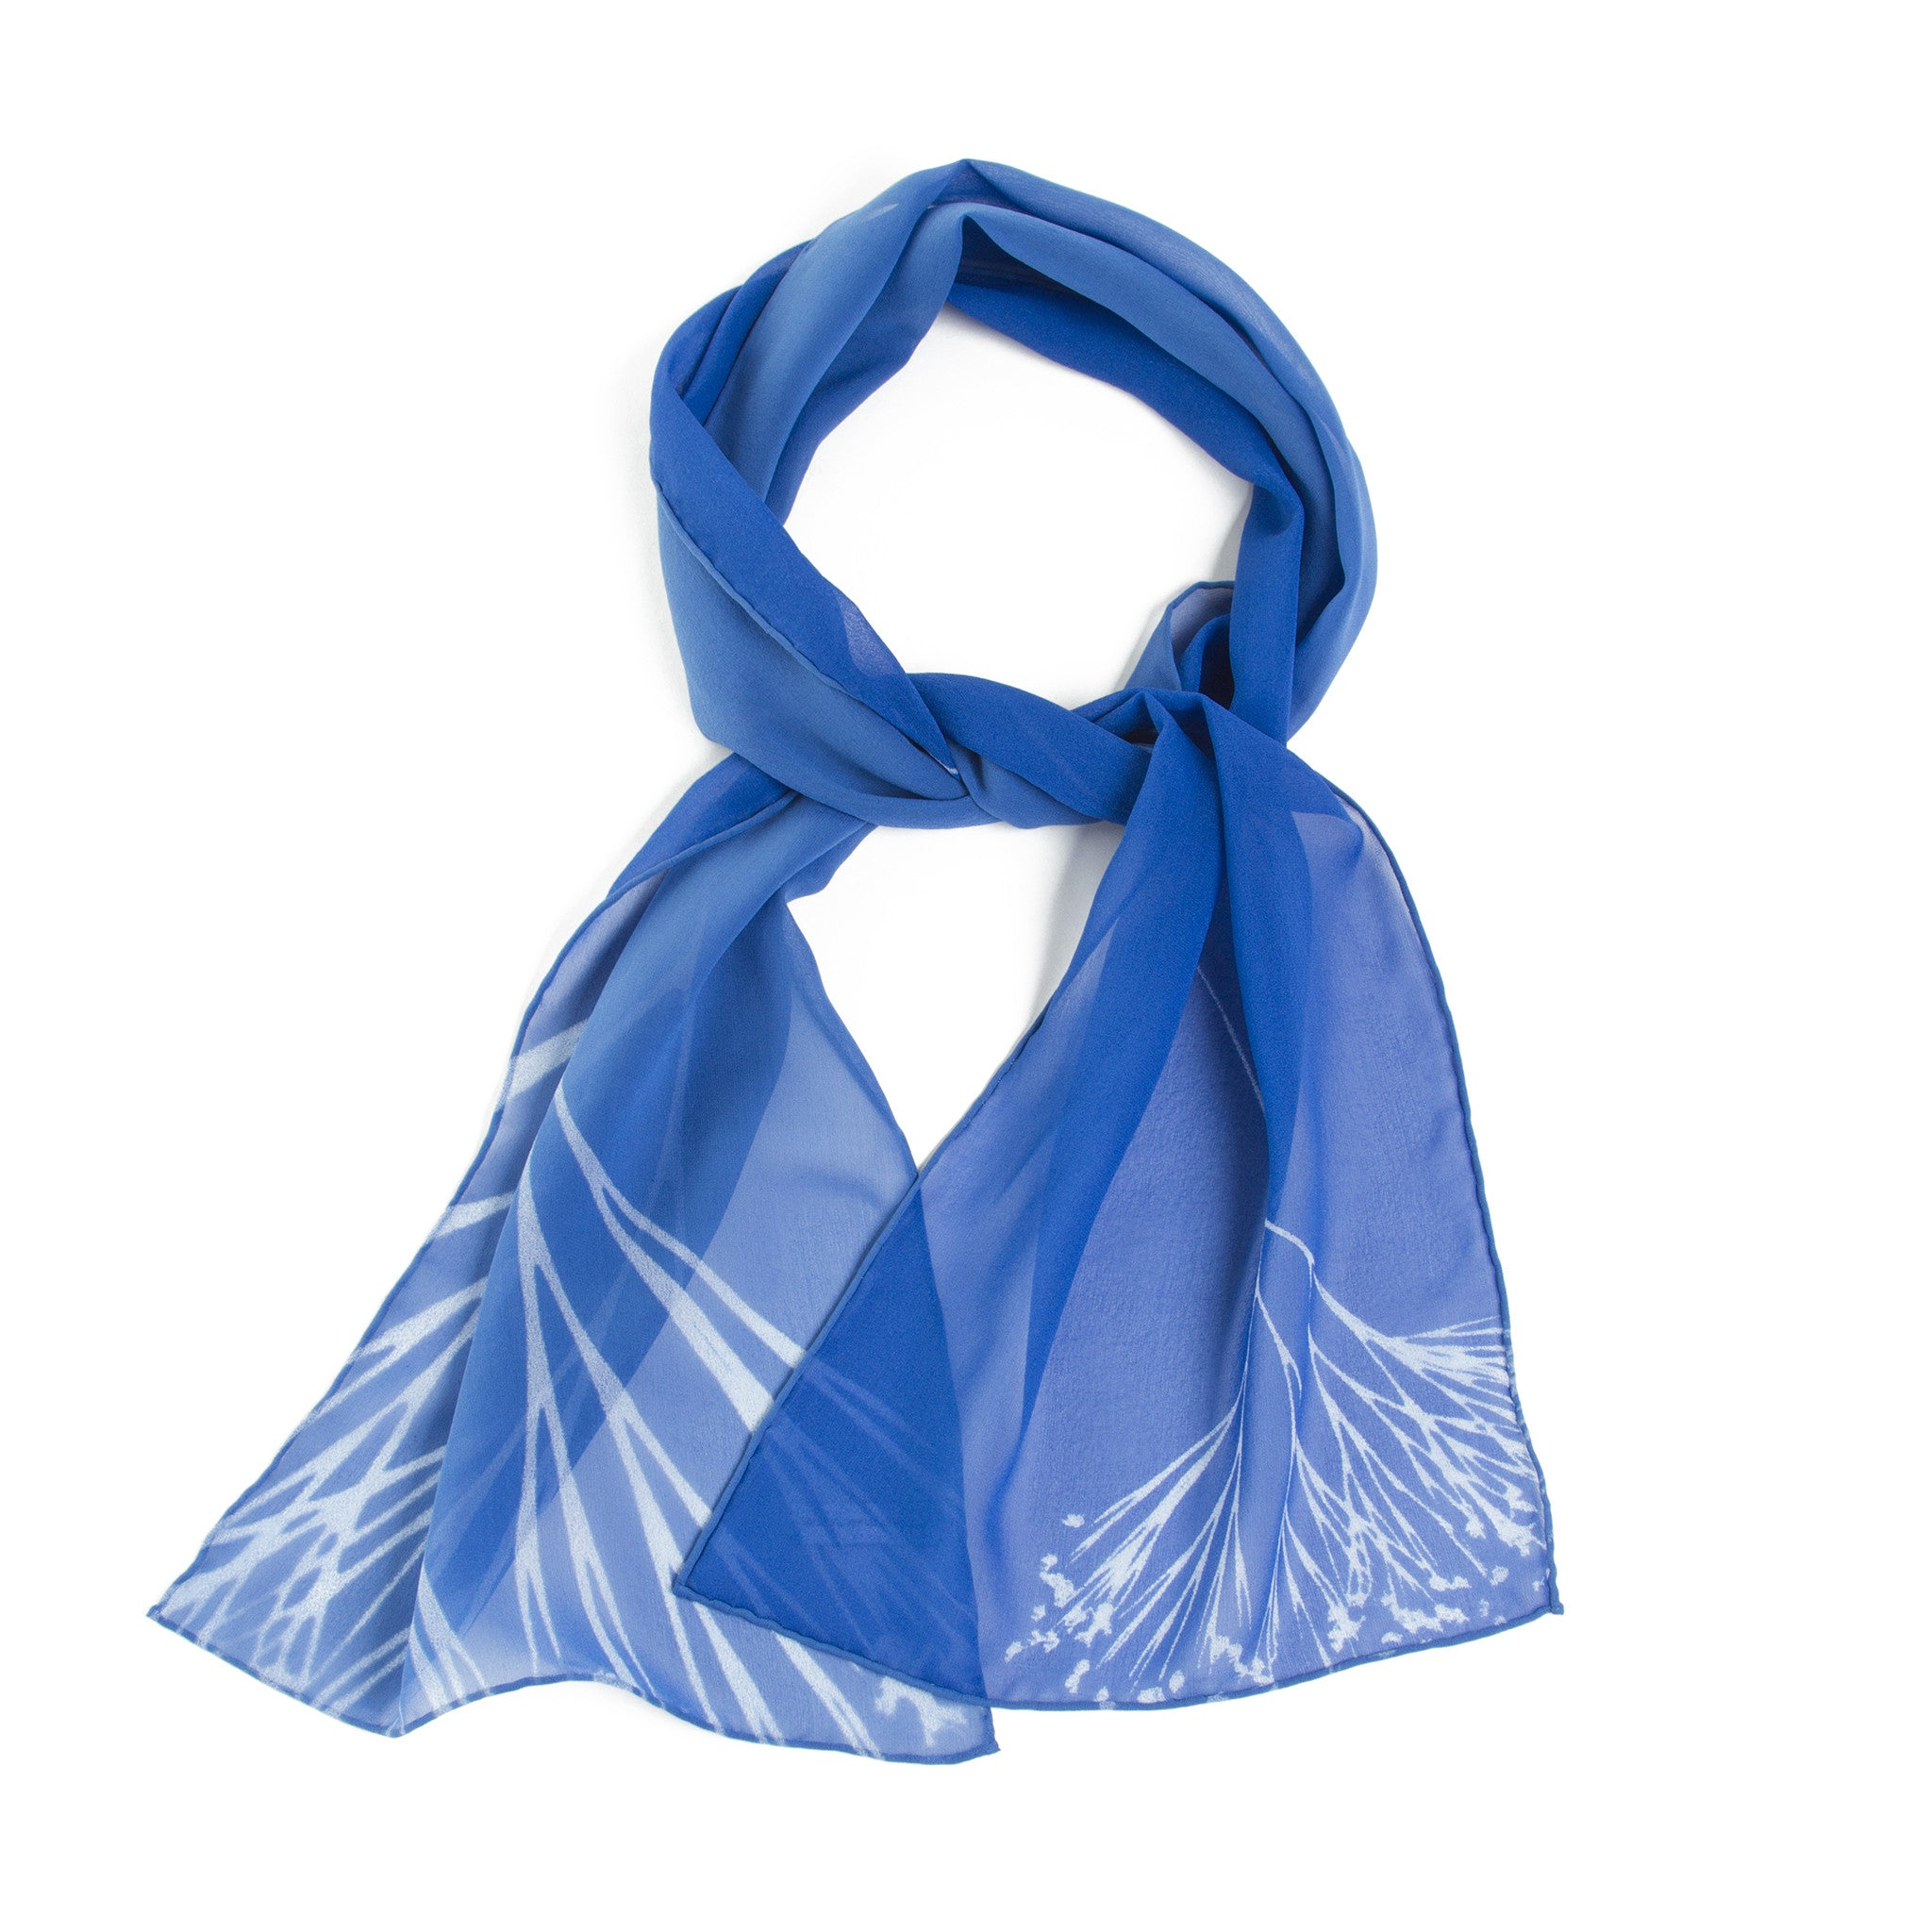 Royal Blue Tubular Silk Scarf with Hand-Knotted Fringe $ Quick View. Royal Blue Plaid Hand-Loomed Chenille Scarf $ Quick View. Wool Windowpane Scarf $ Quick View. Cashmere Logo Scarf $ More colors. Quick View. Brushed Medallion Silk Scarf $